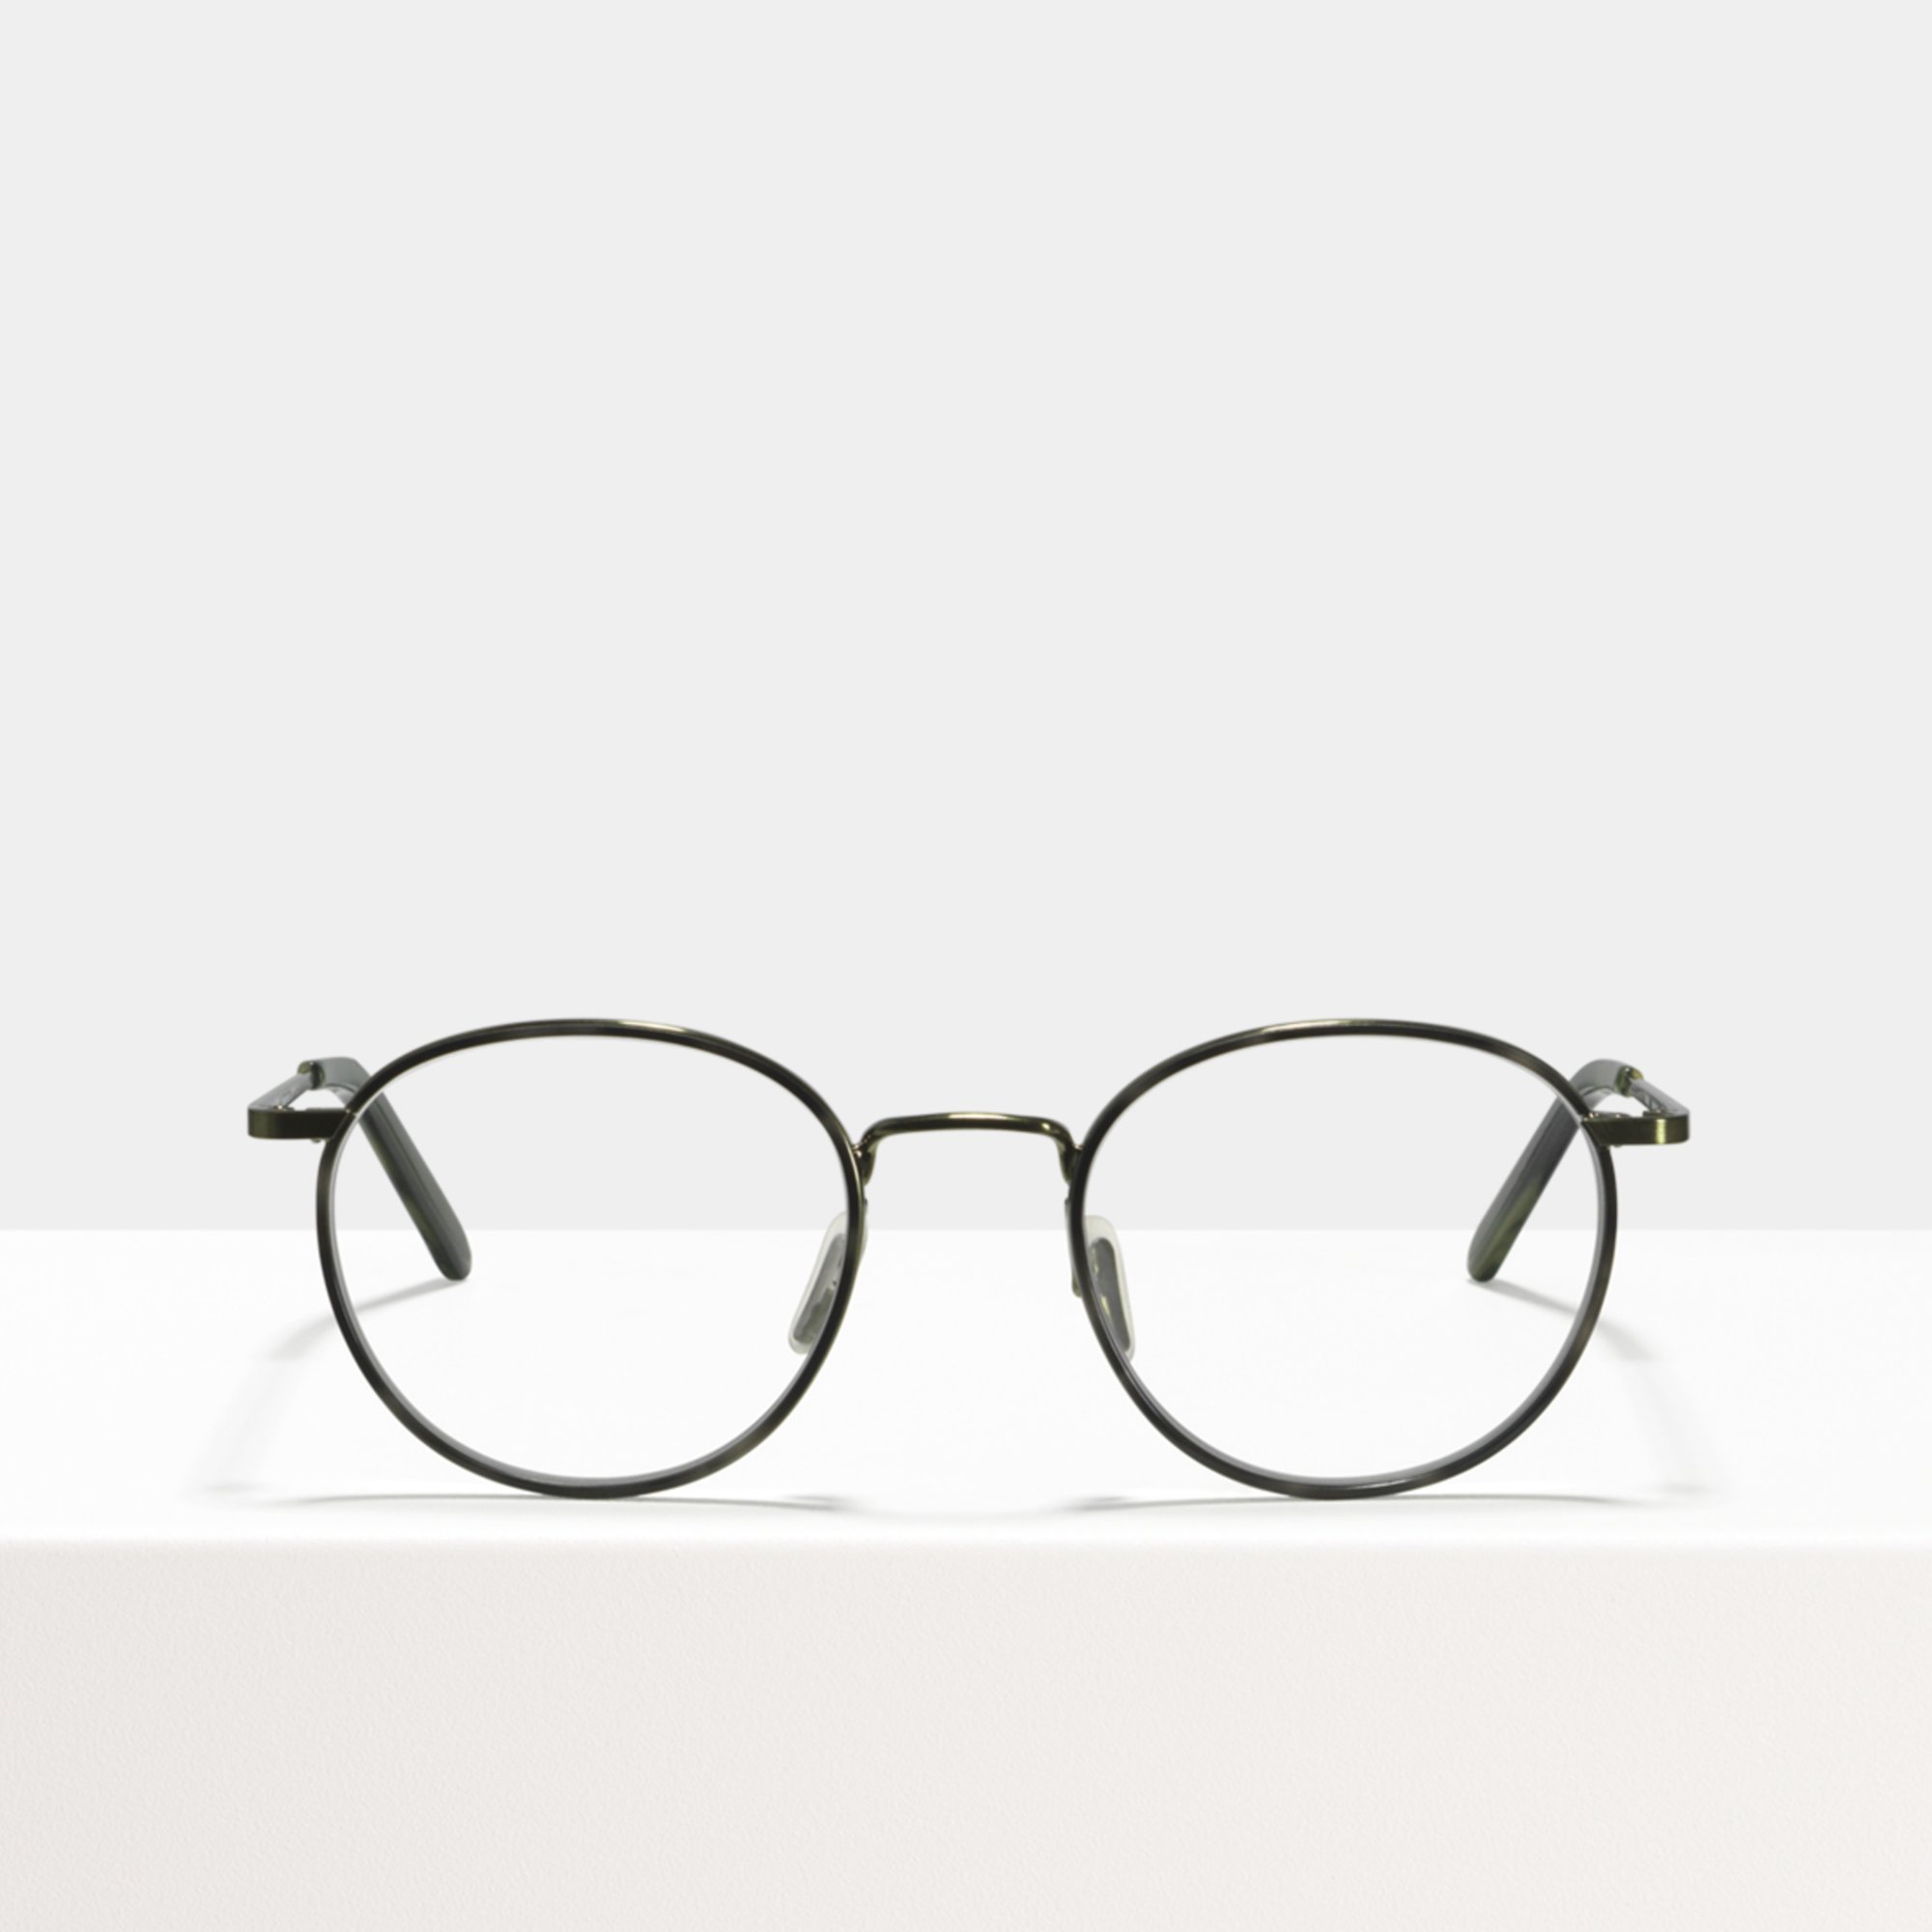 Ace & Tate Glasses | round metal in Green, Grey